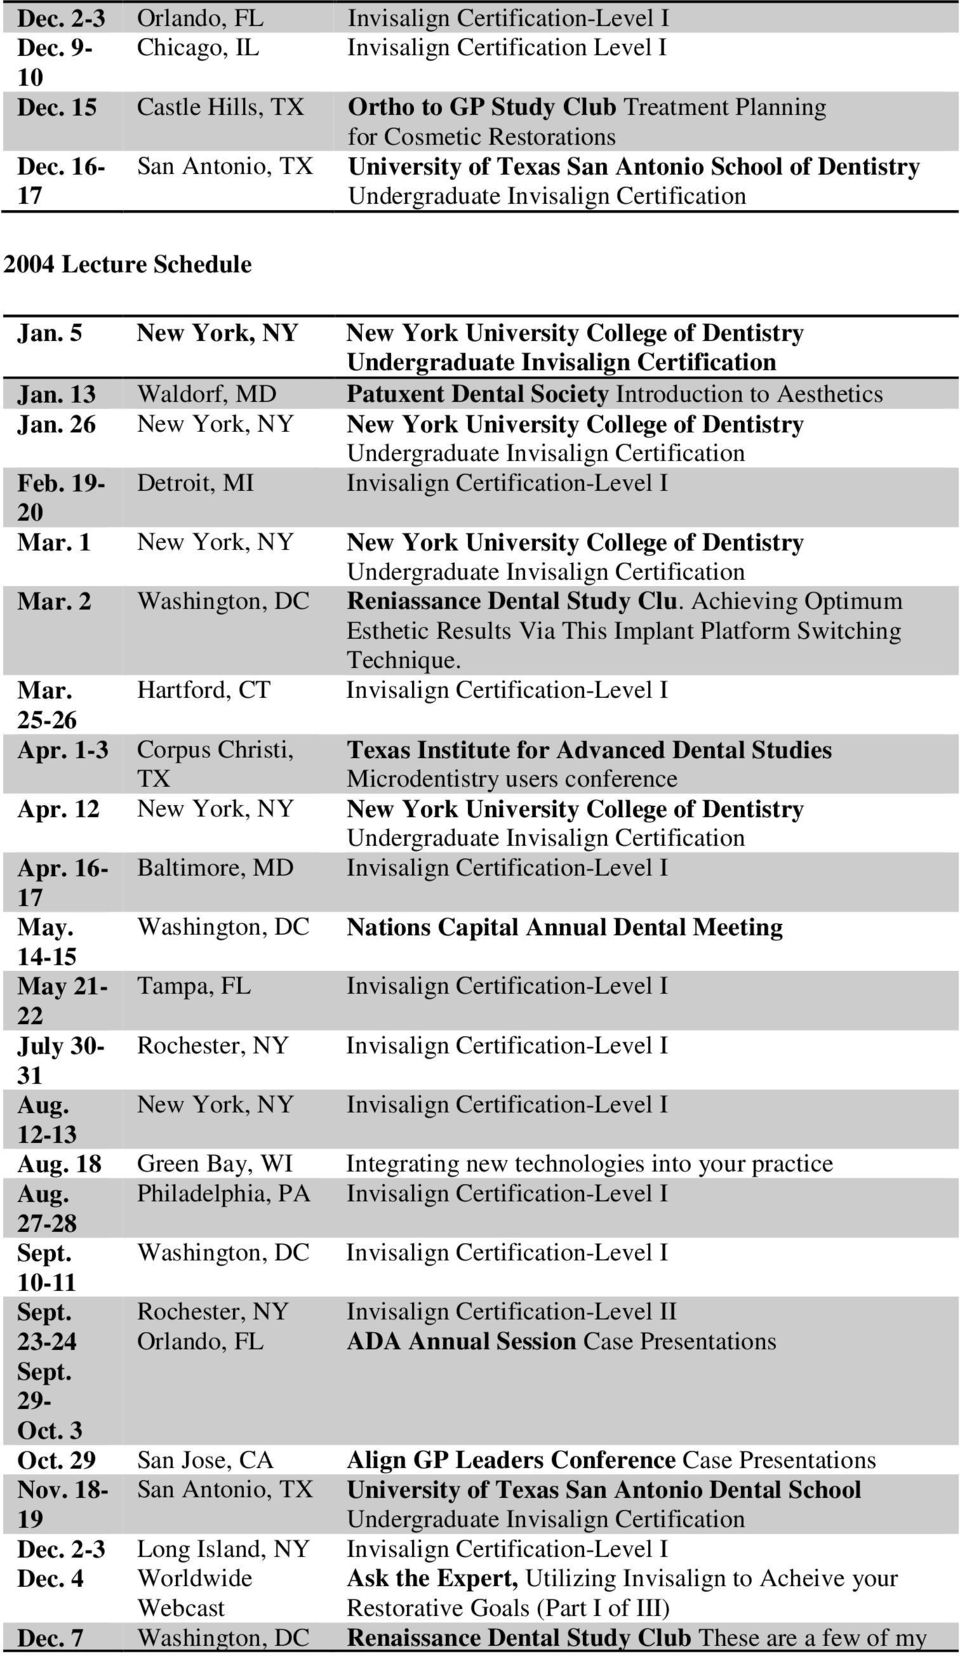 13 Waldorf, MD Patuxent Dental Society Introduction to Aesthetics Jan. 26 New York, NY New York University College of Dentistry Feb. 19- Detroit, MI 20 Mar.